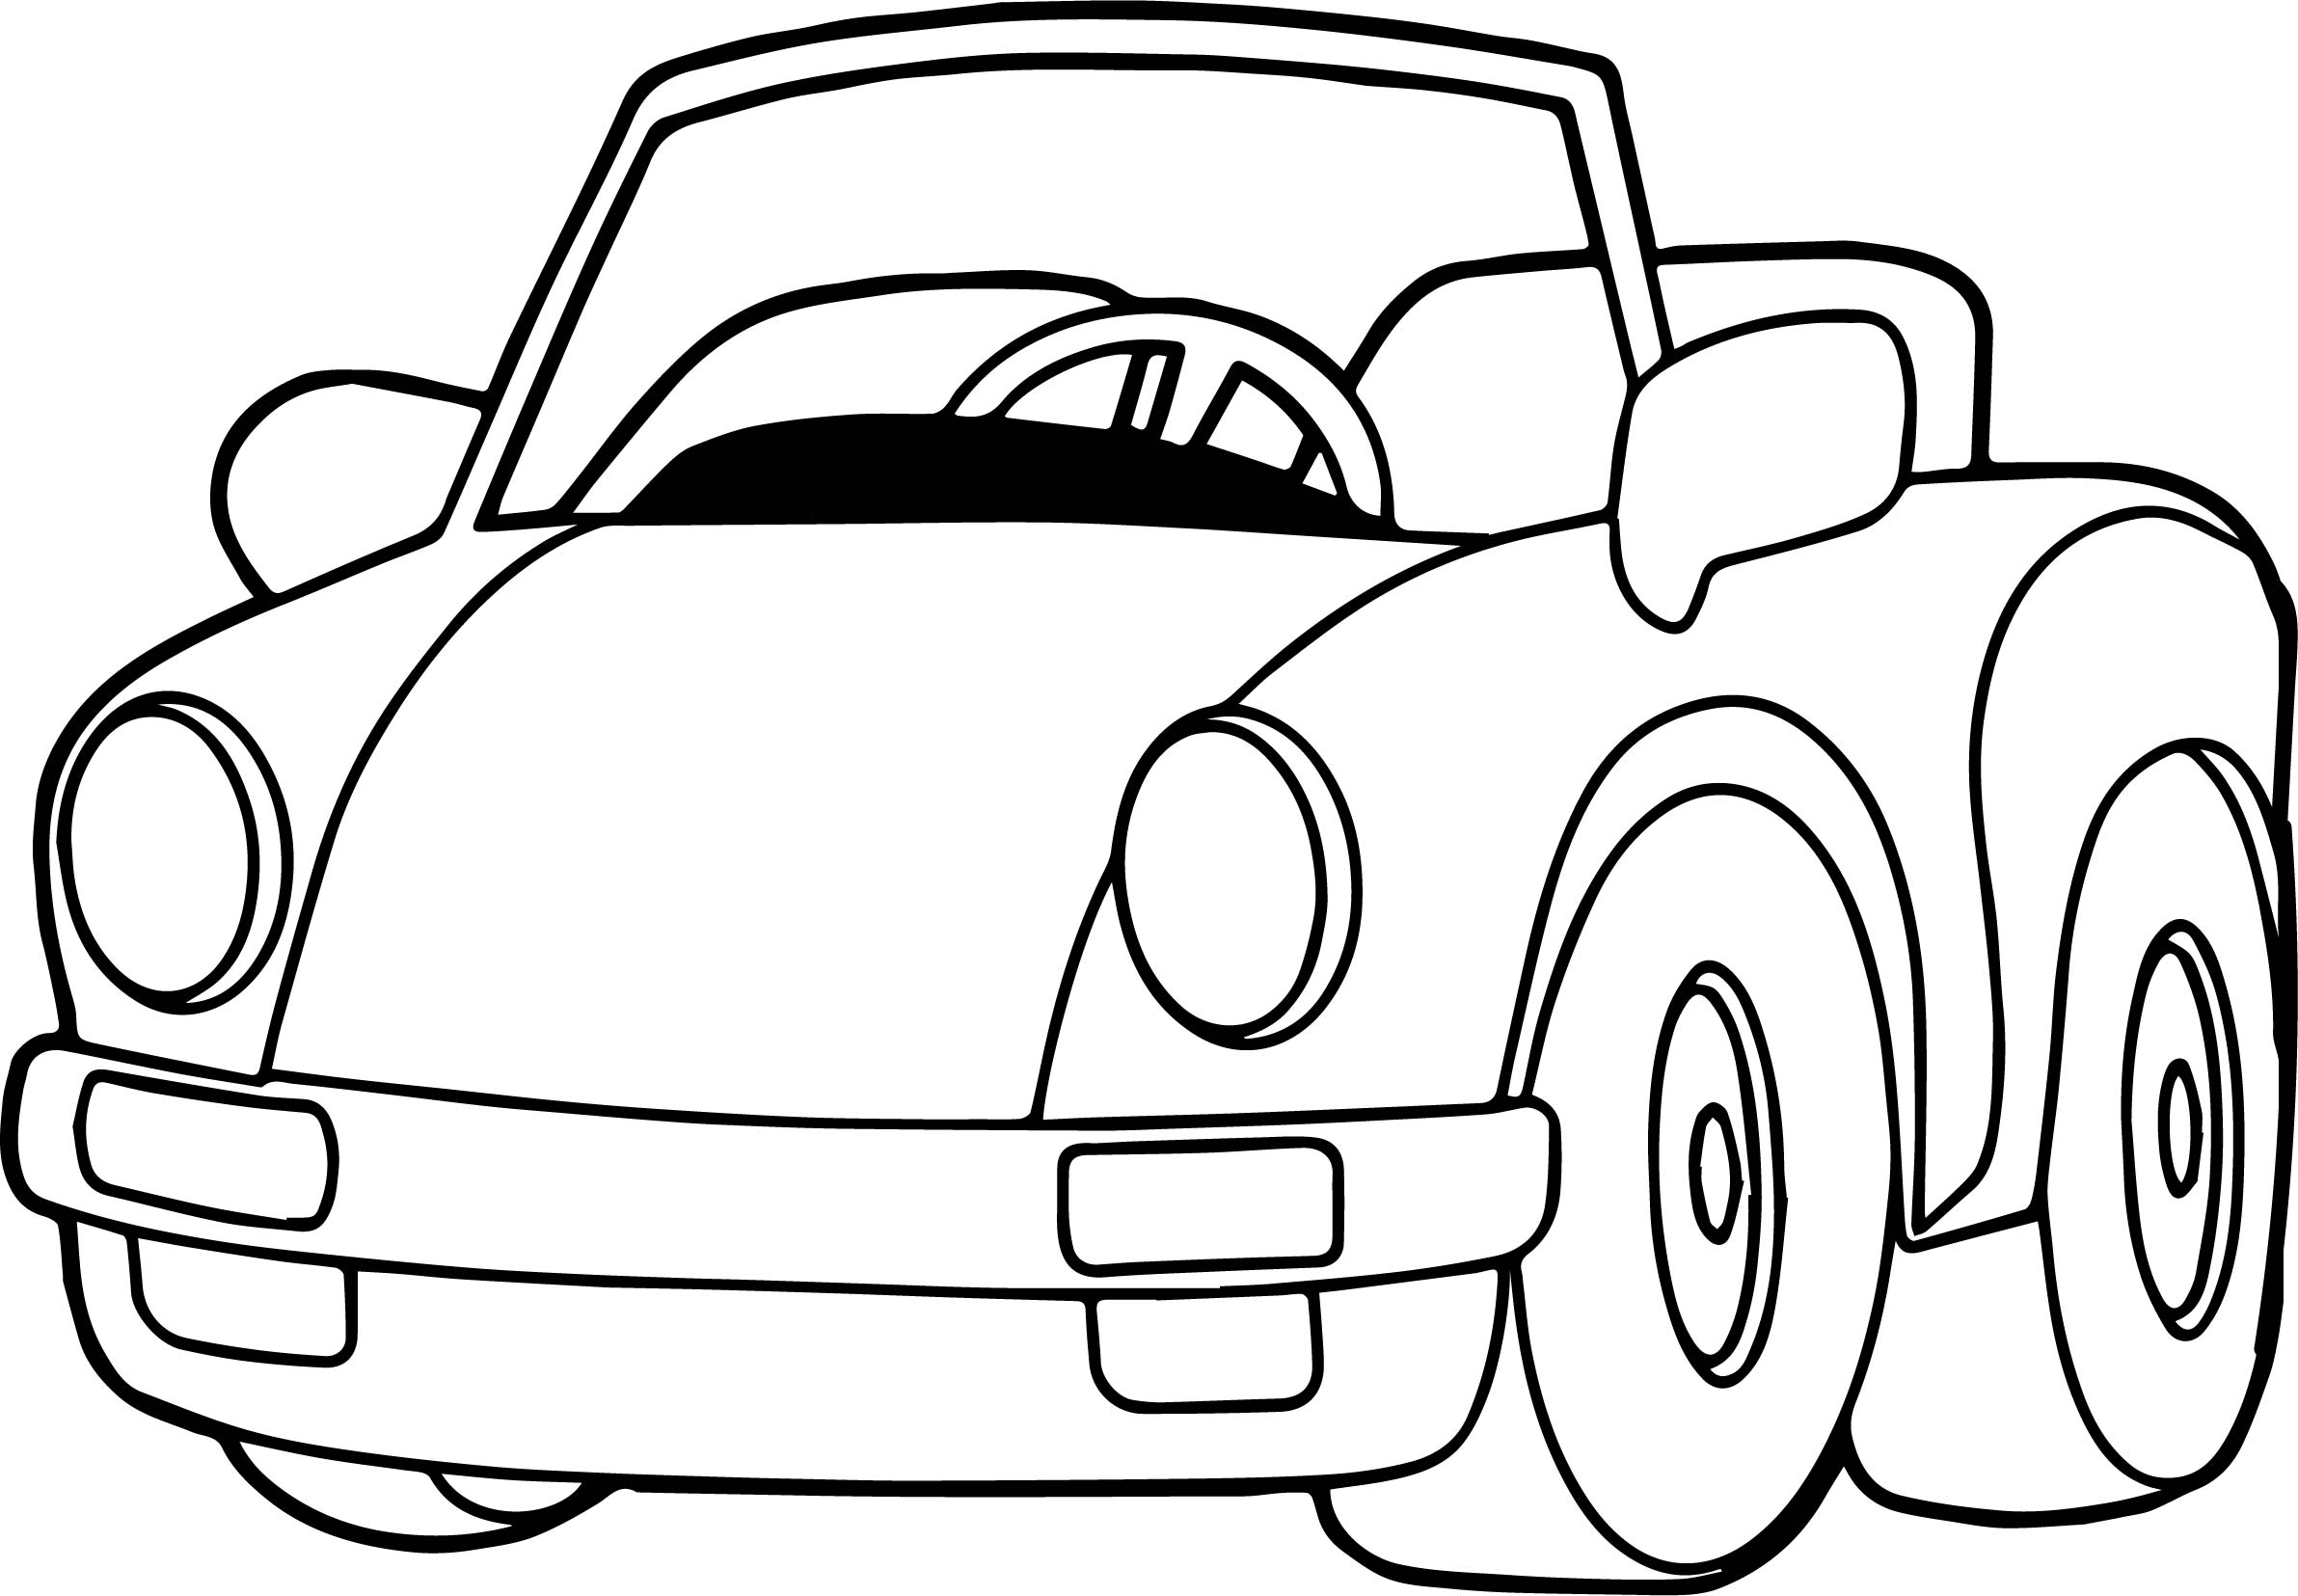 Beetle Coloring Page Auto Electrical Wiring Diagram Connectors Ford Harness Wpt727 Speed Toy Car